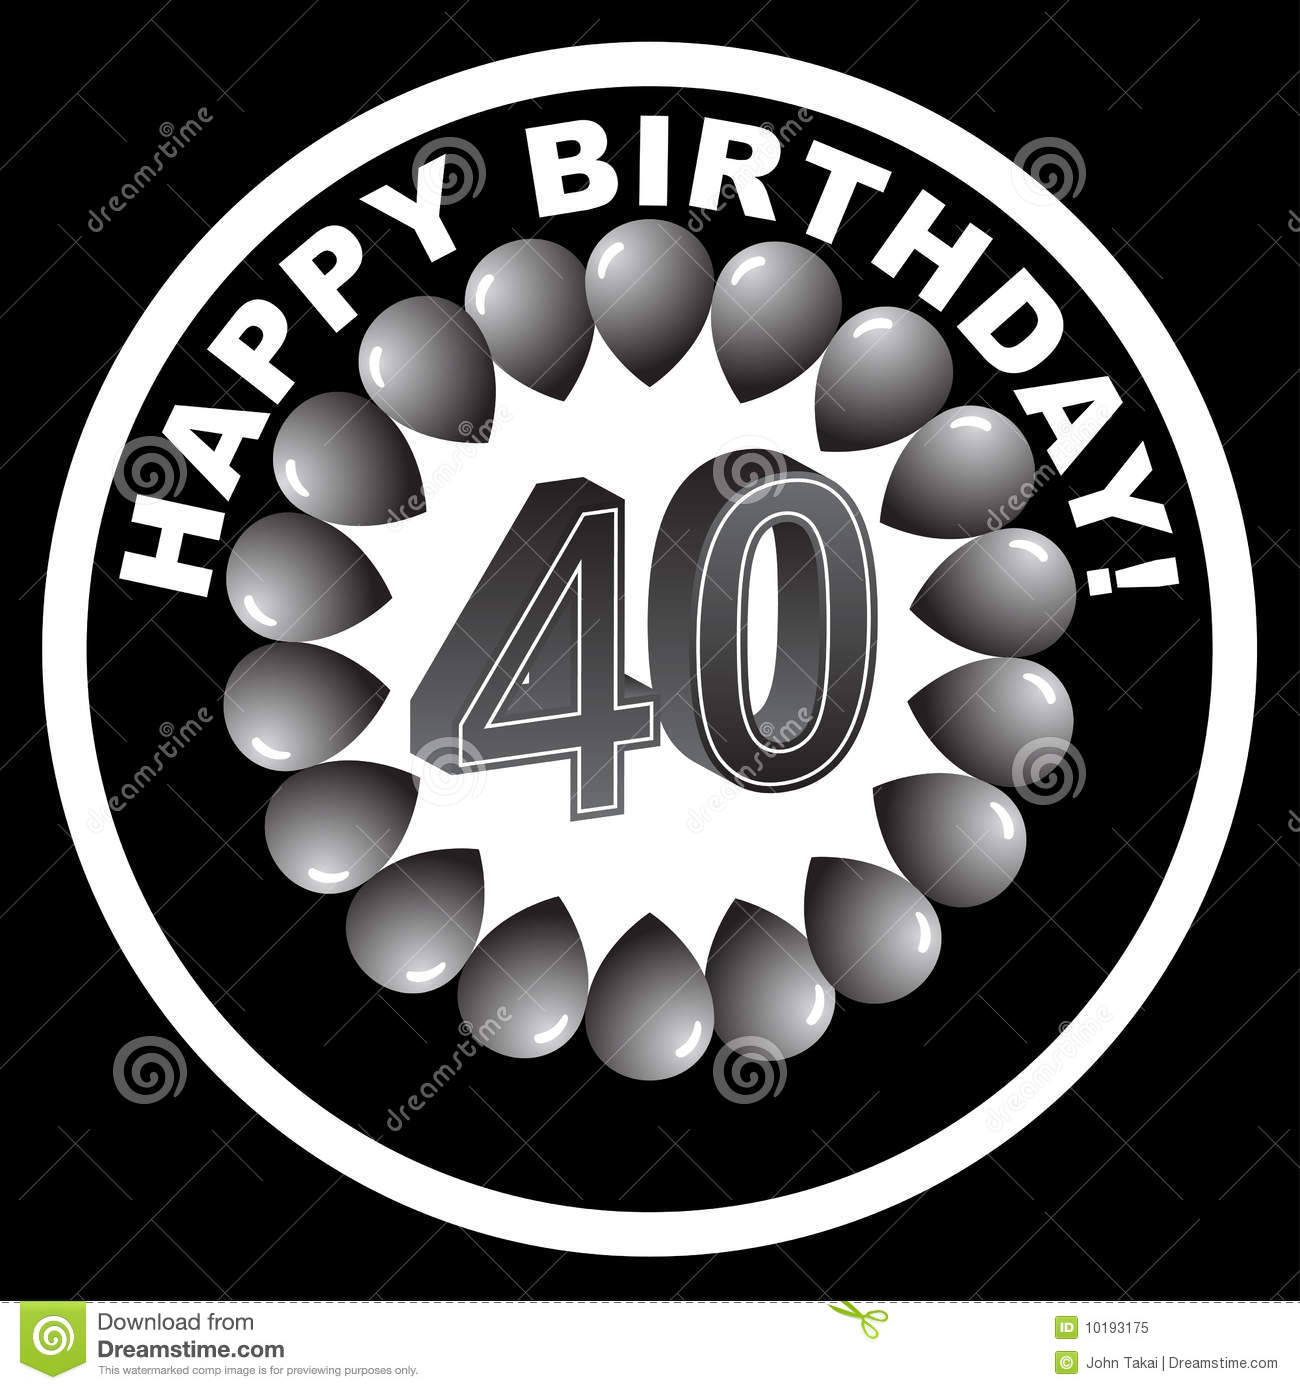 free 40th birthday clipart images ; happy-birthday-icon-happy-40th-10193175